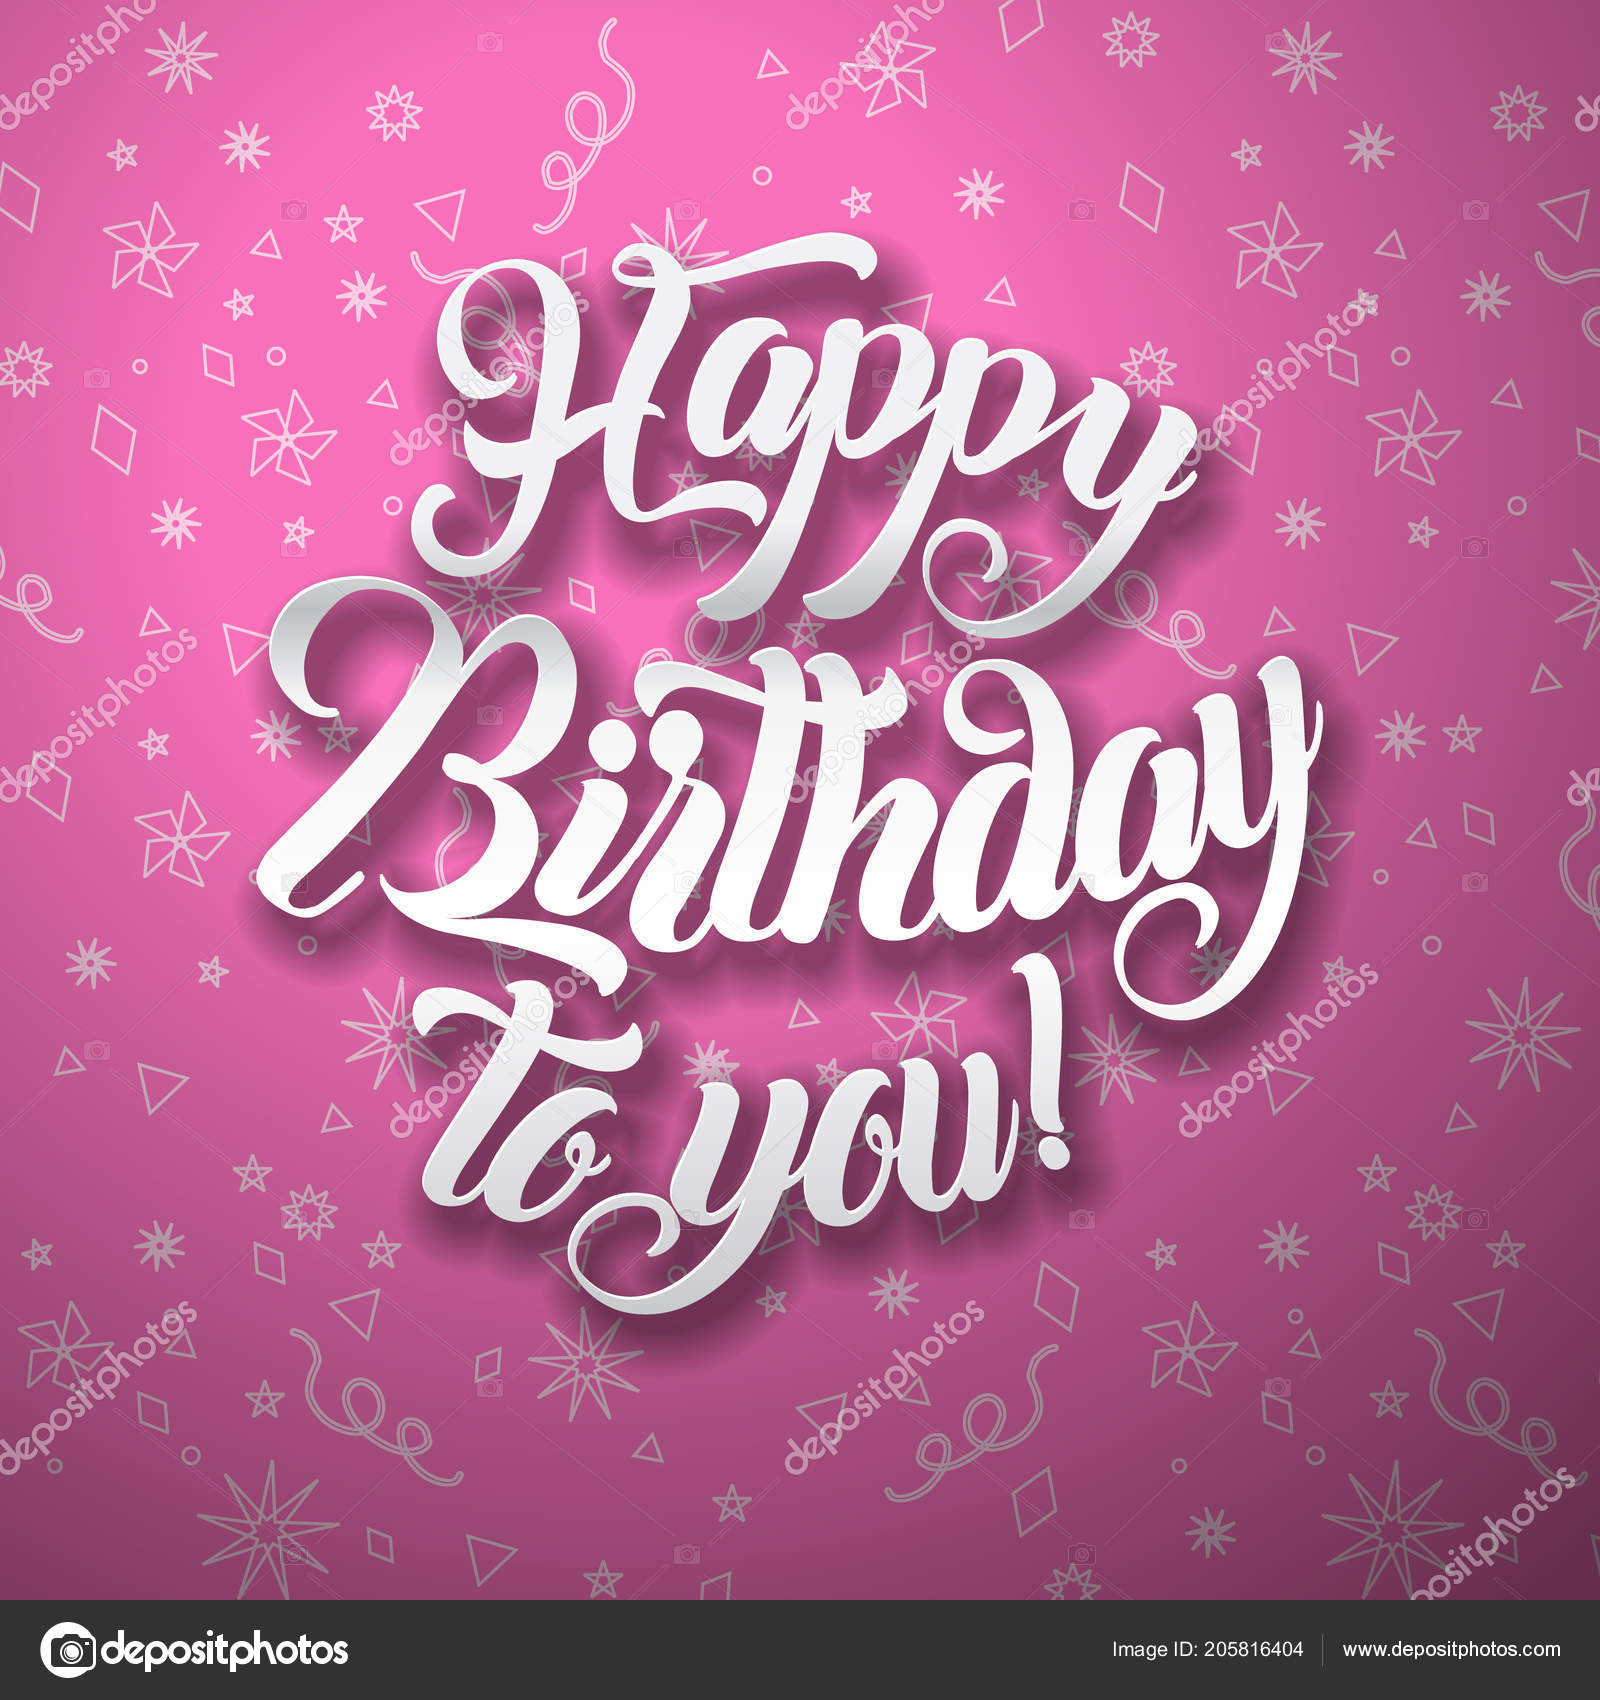 Happy Birthday To You Lettering Text Vector Illustration Greeting Card Design Vektor Von SubhanBghirov